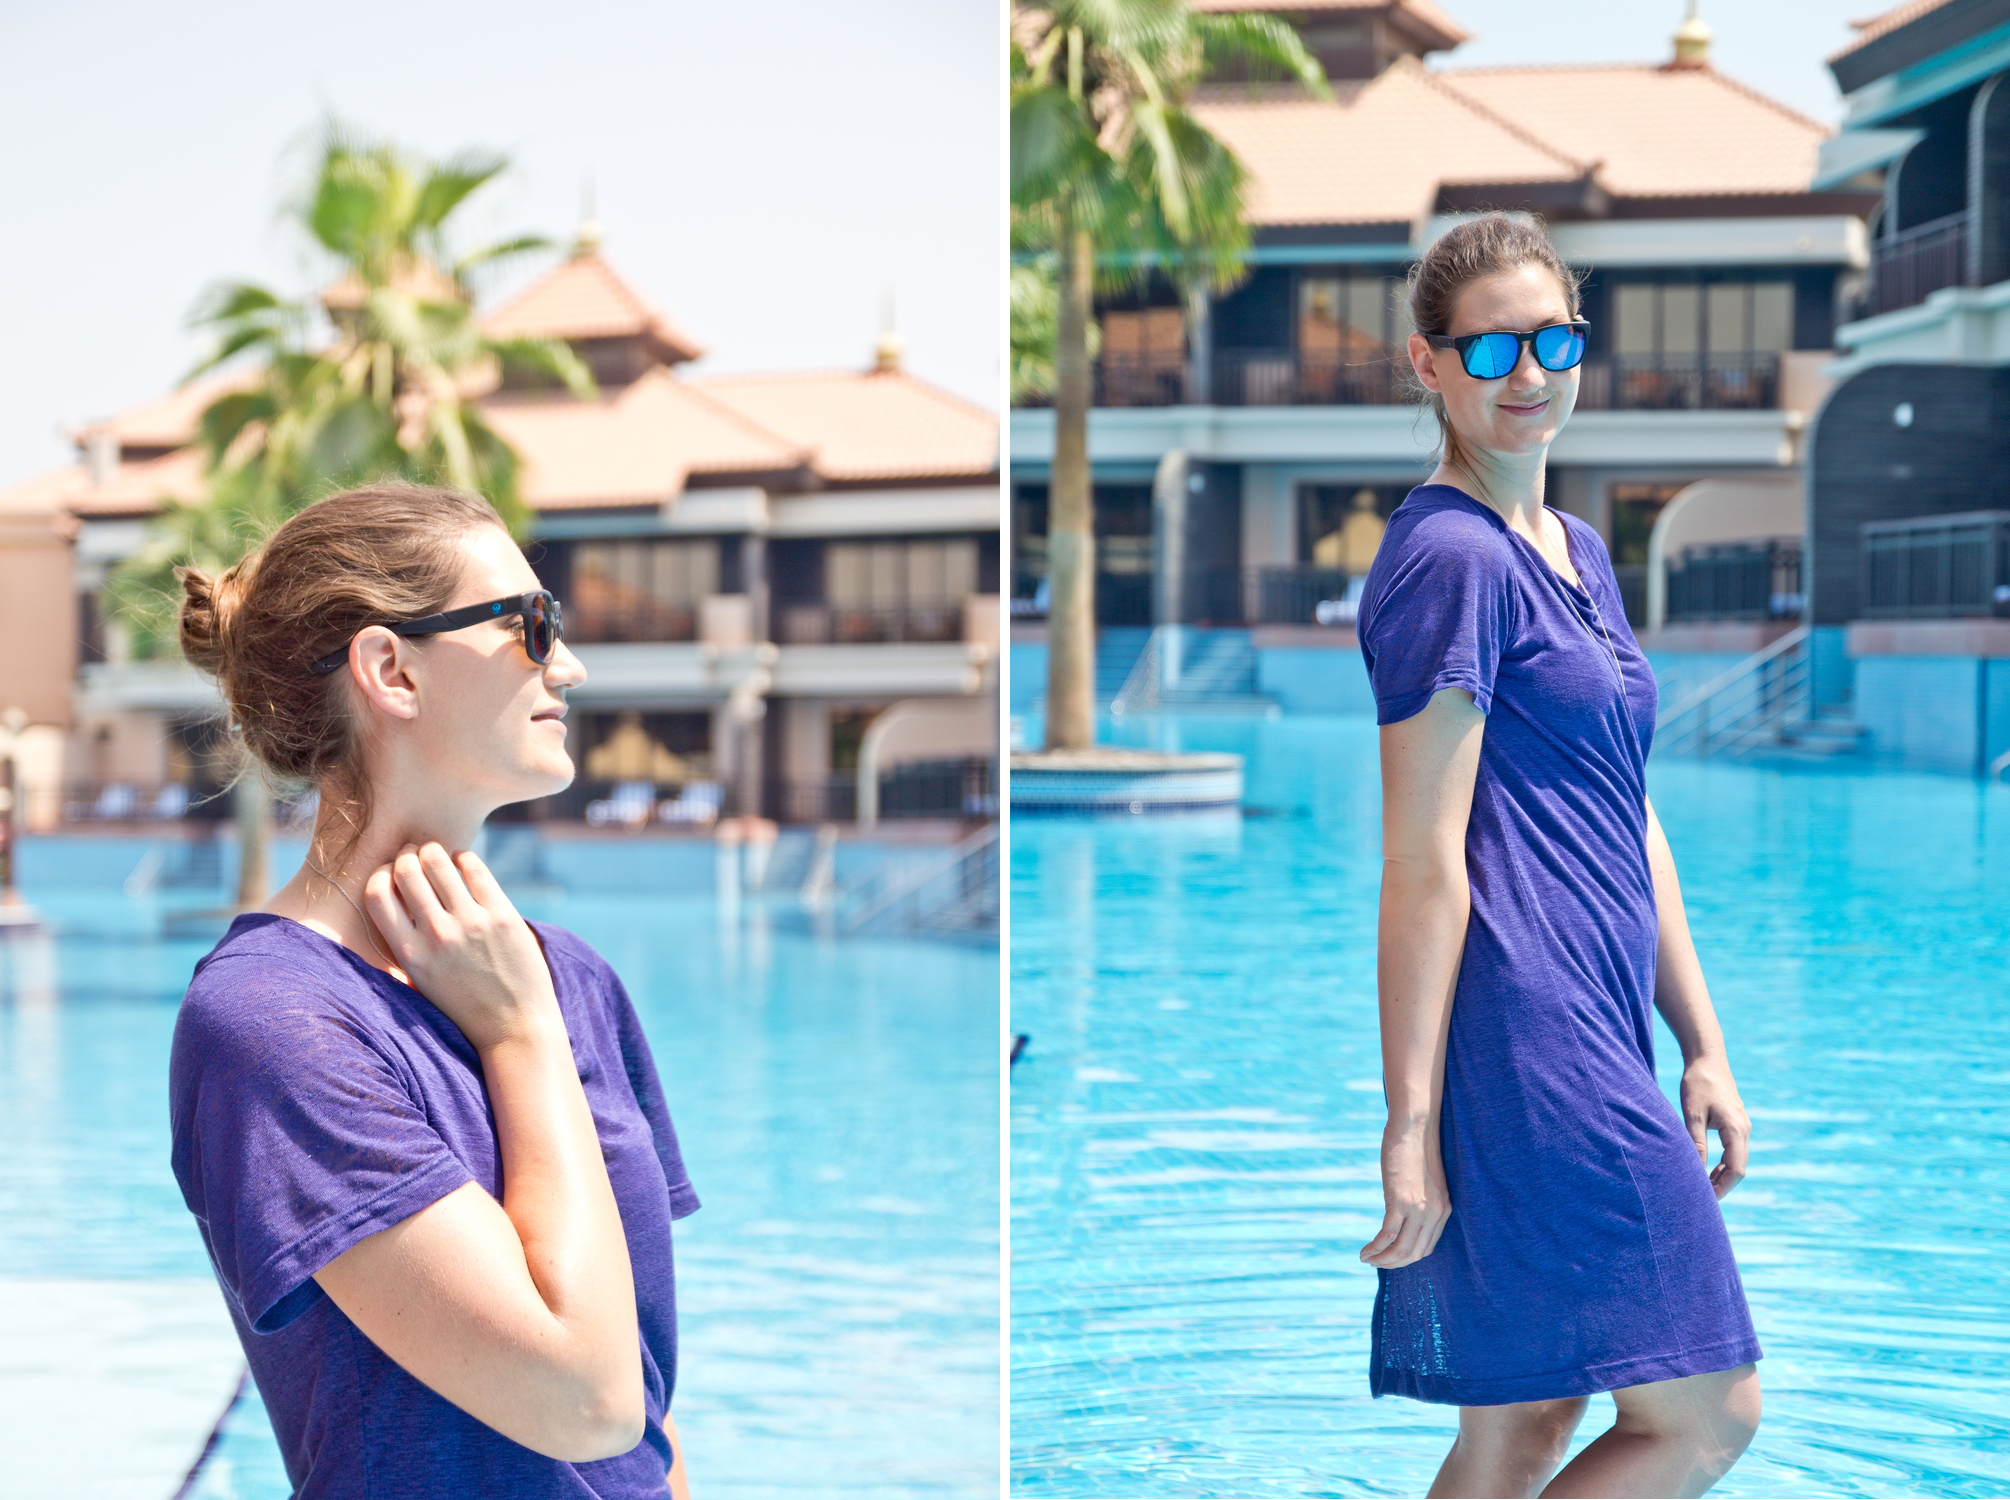 dubai_fashion_blog_eve_in_paradise_anantara_dubai_the_palm_resort_spa_hotel_beach_reiseblog_travelblog_05